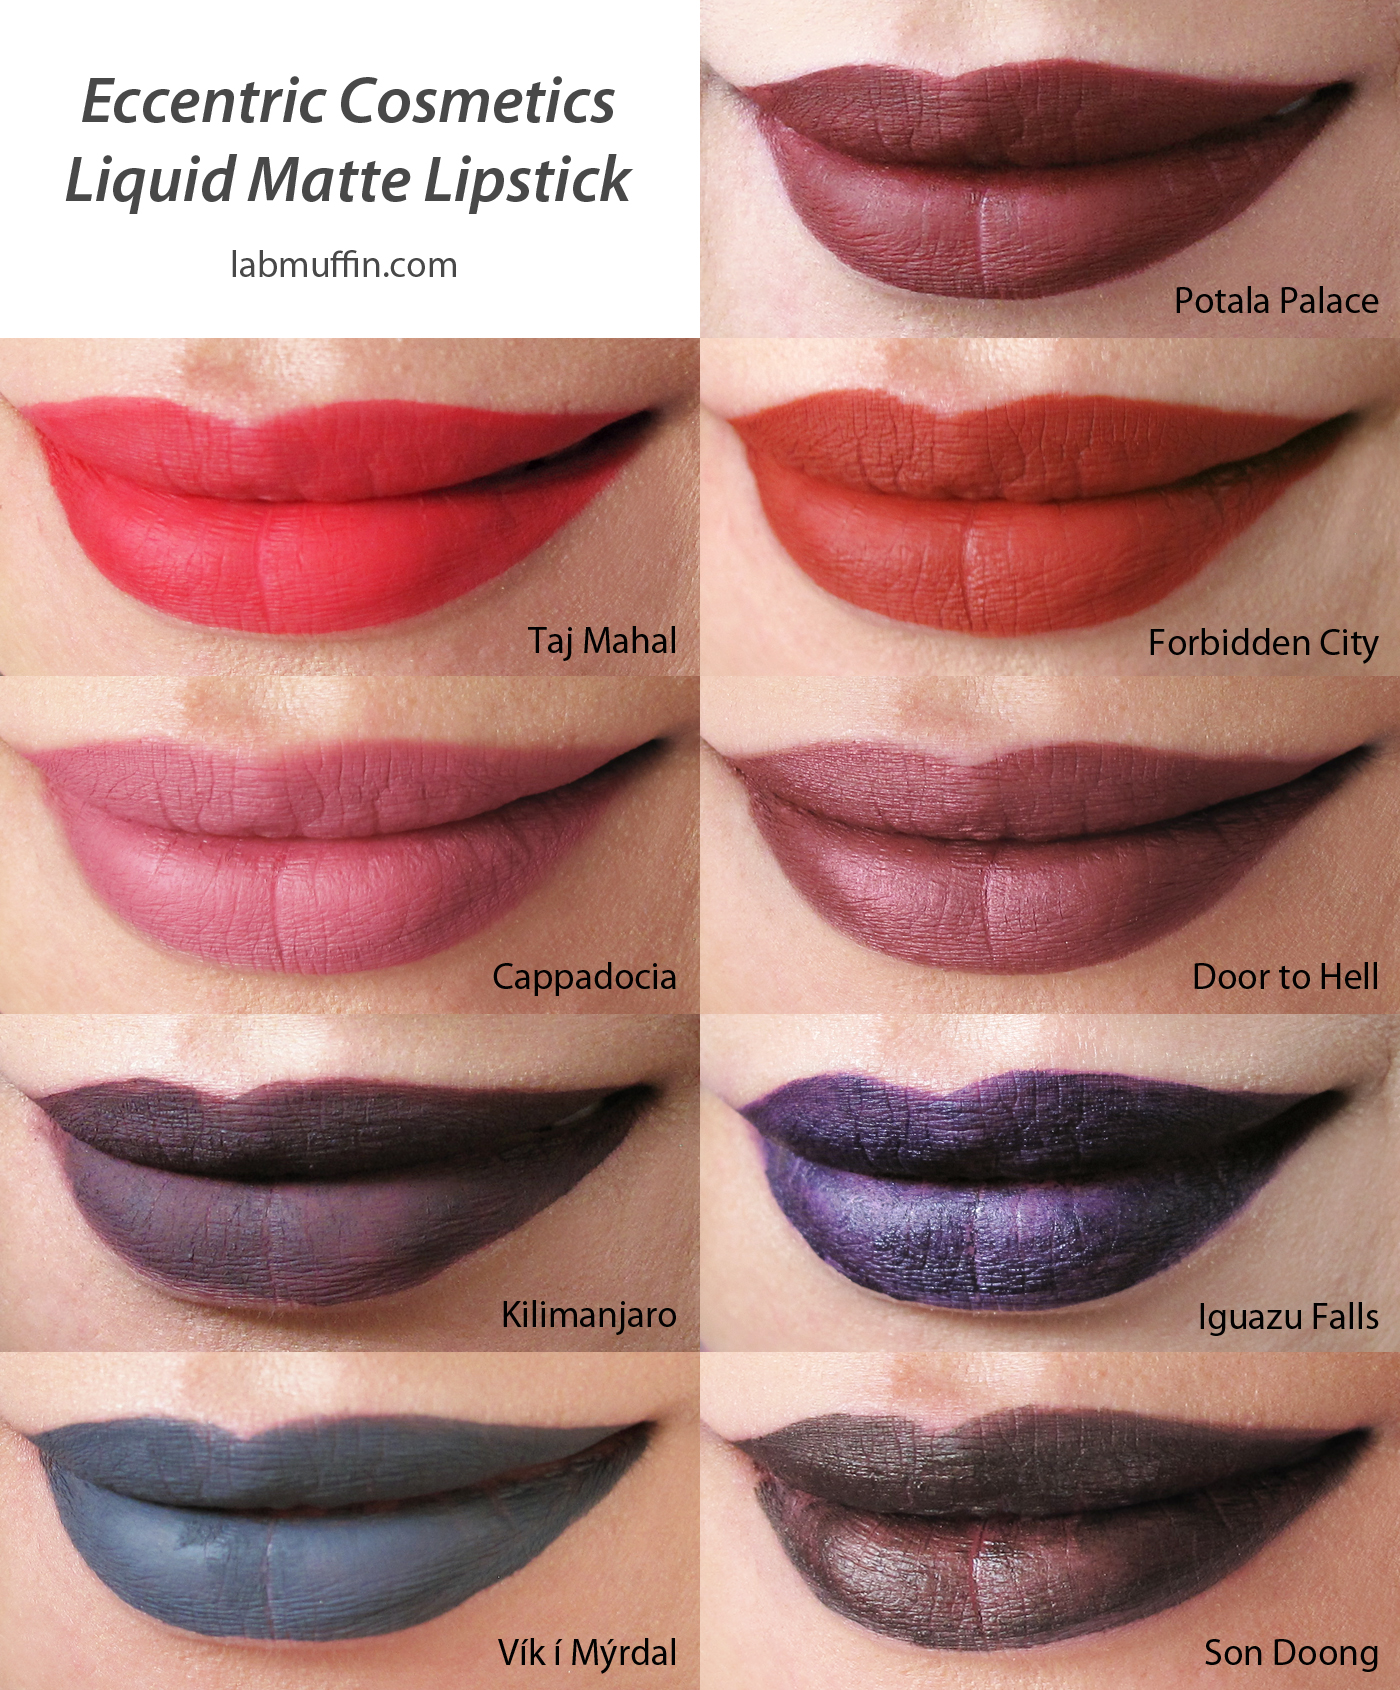 Eccentric Cosmetics Matte Liquid Lipsticks Swatches and Review